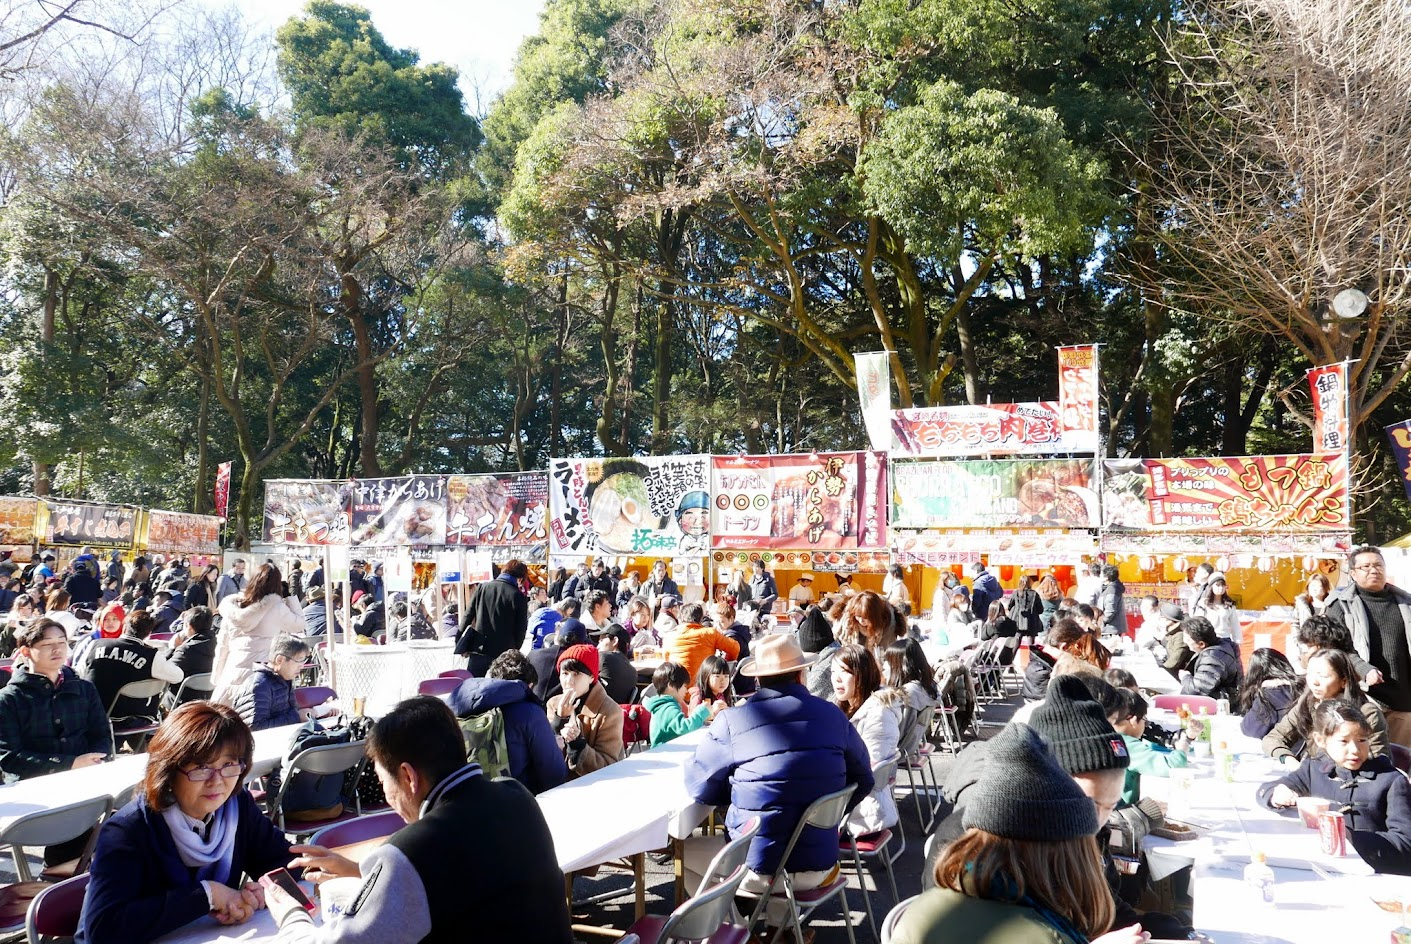 Some of the food on the way out of Meiji Shrine on the way to the Harajuku train station entrance on New Year's Day to feed the crowds coming from Hatsumode